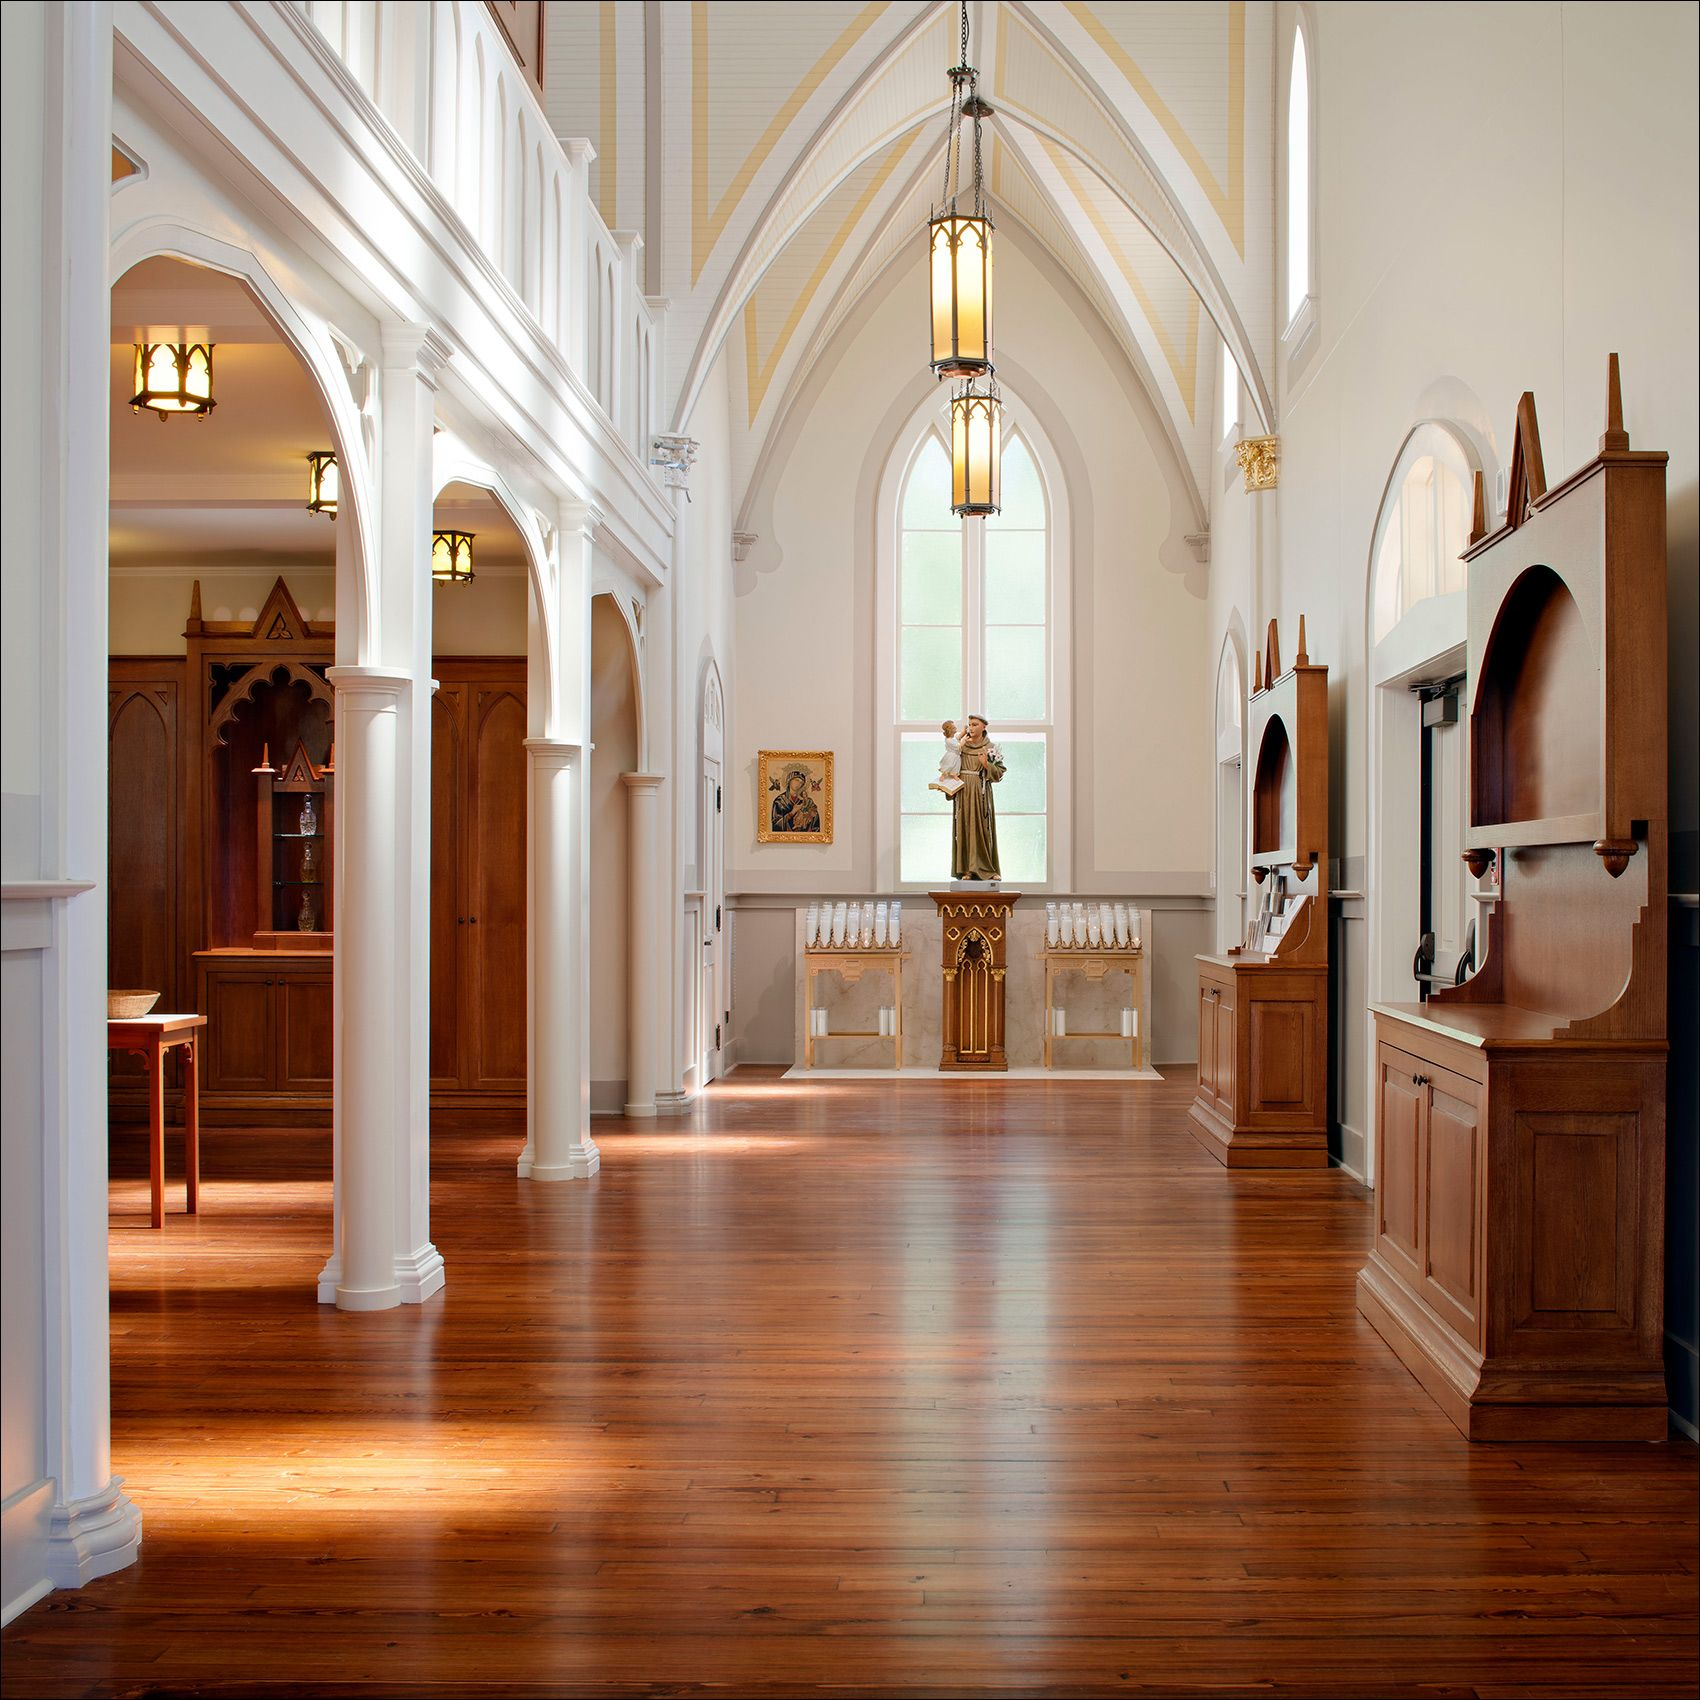 CockfieldJacksonArchitects_Louisiana_ChurchRenovation.jpg